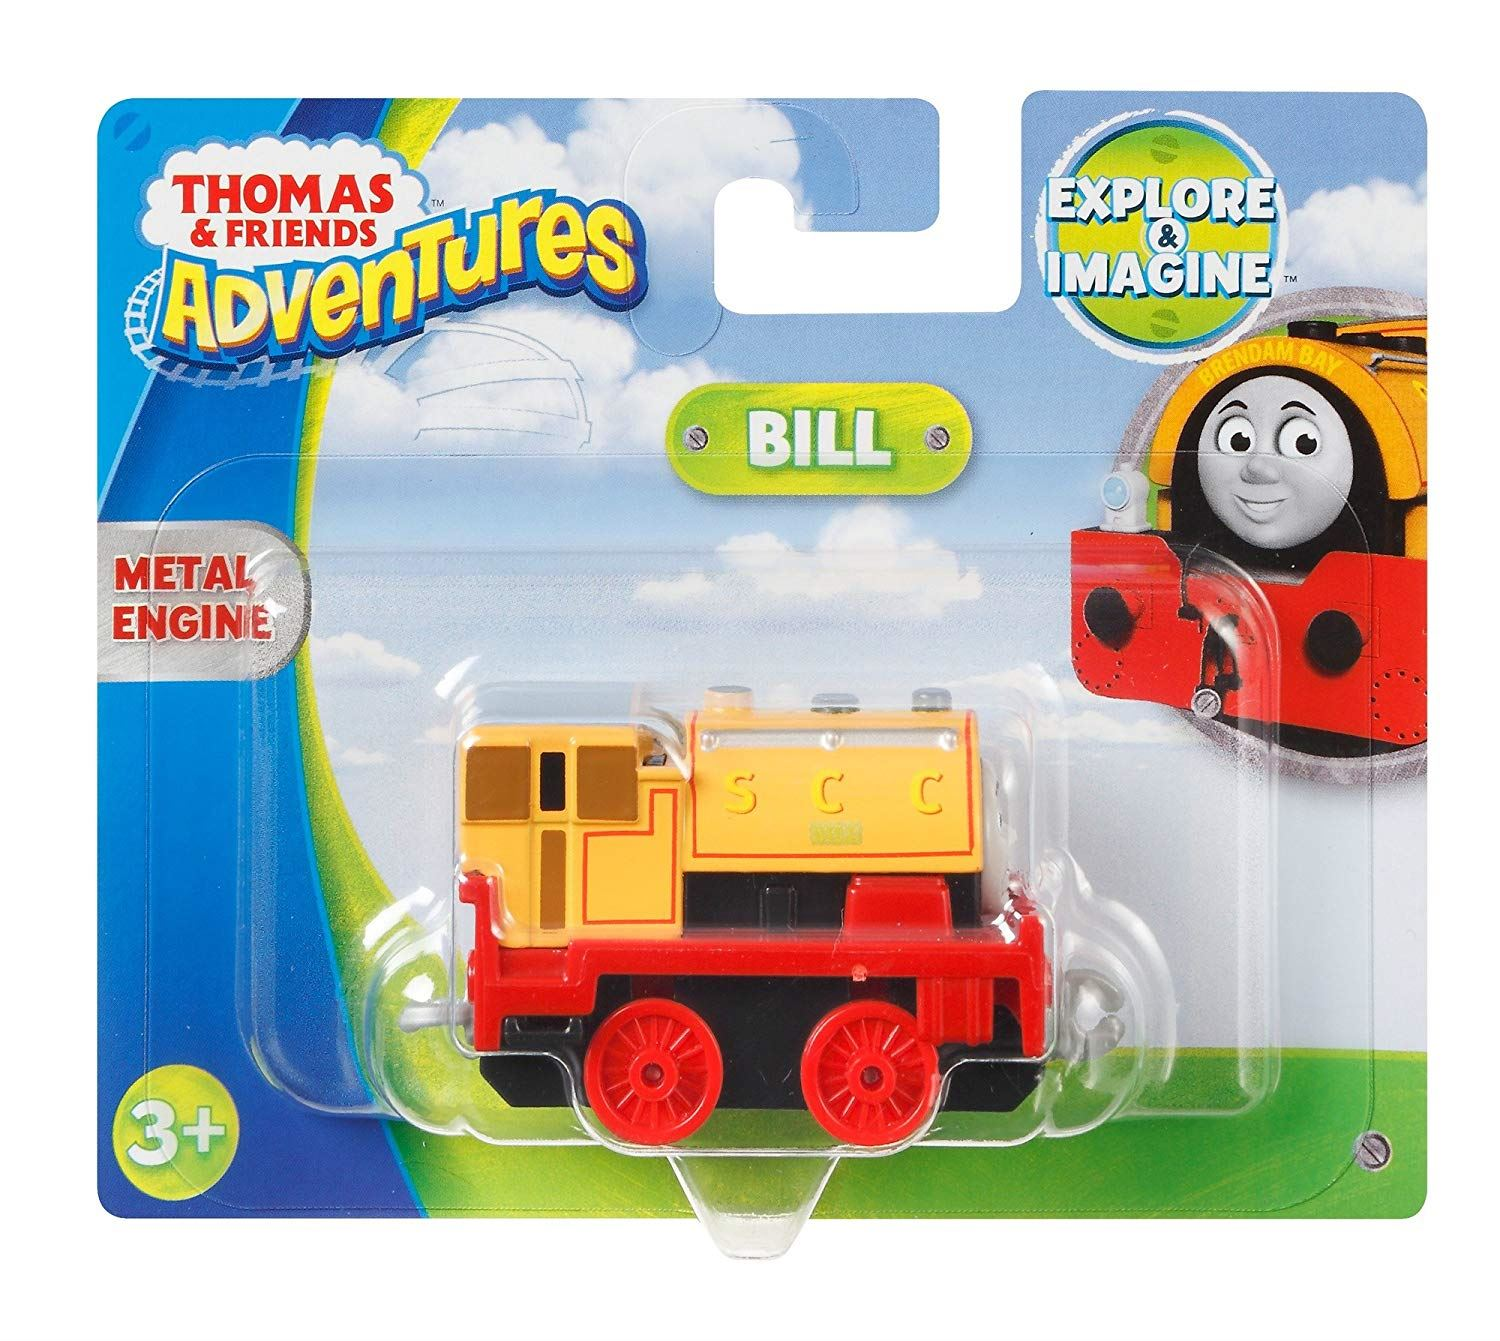 Thomas-amp-Friends-Adventures-Ferdinand-lexi-Shane-Dash-Huge-Bill-Trains Indexbild 3